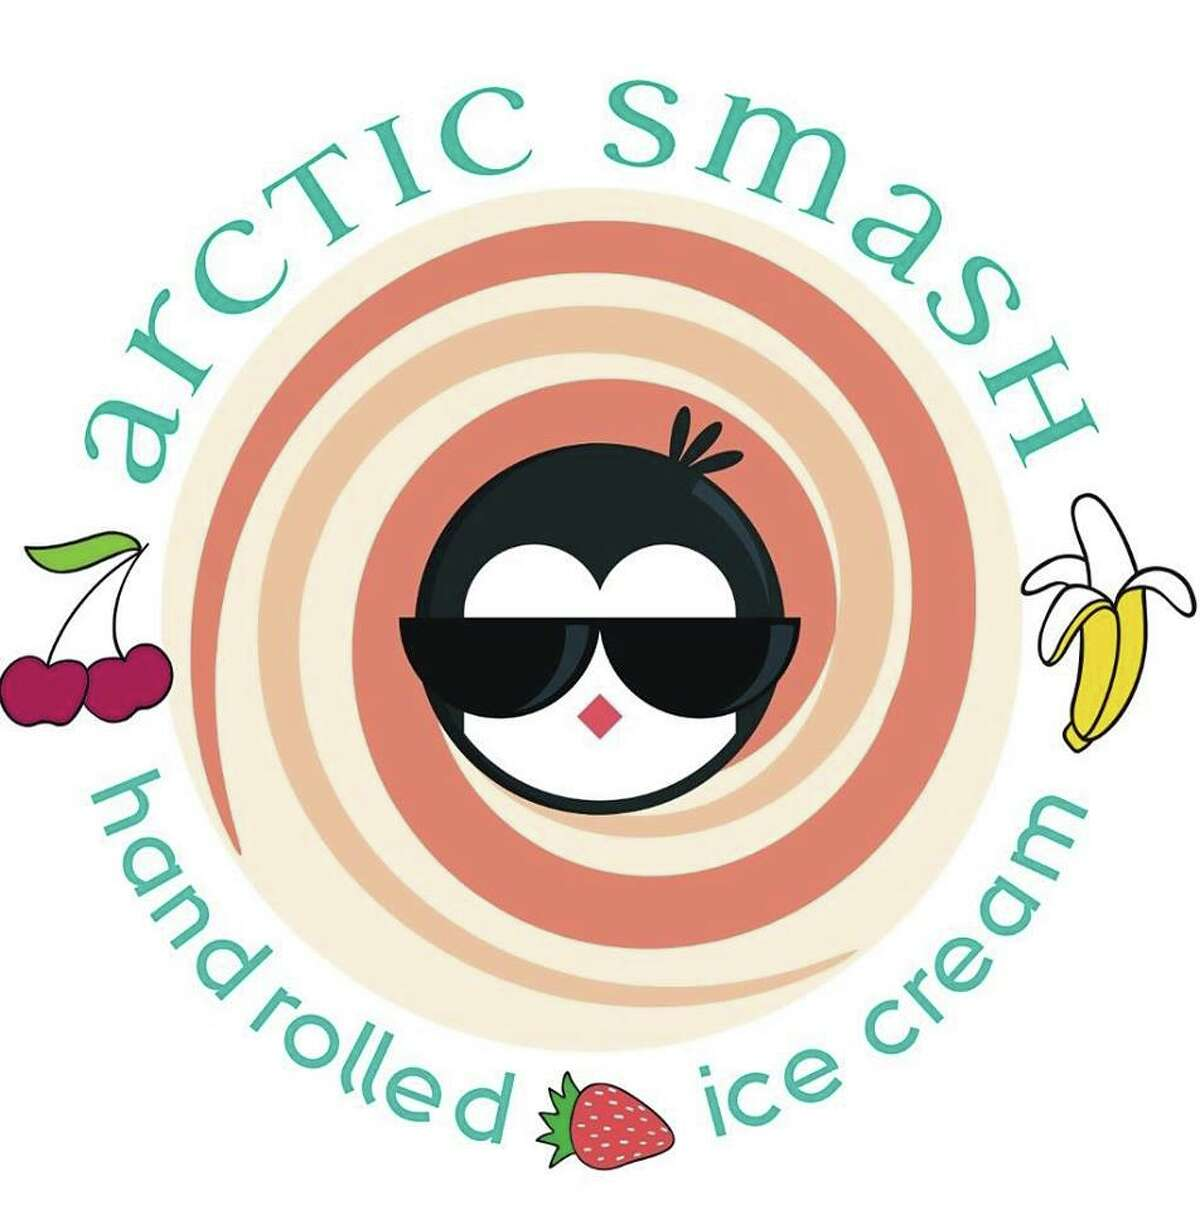 Arctic Smash is coming to Crossgates in 2018.